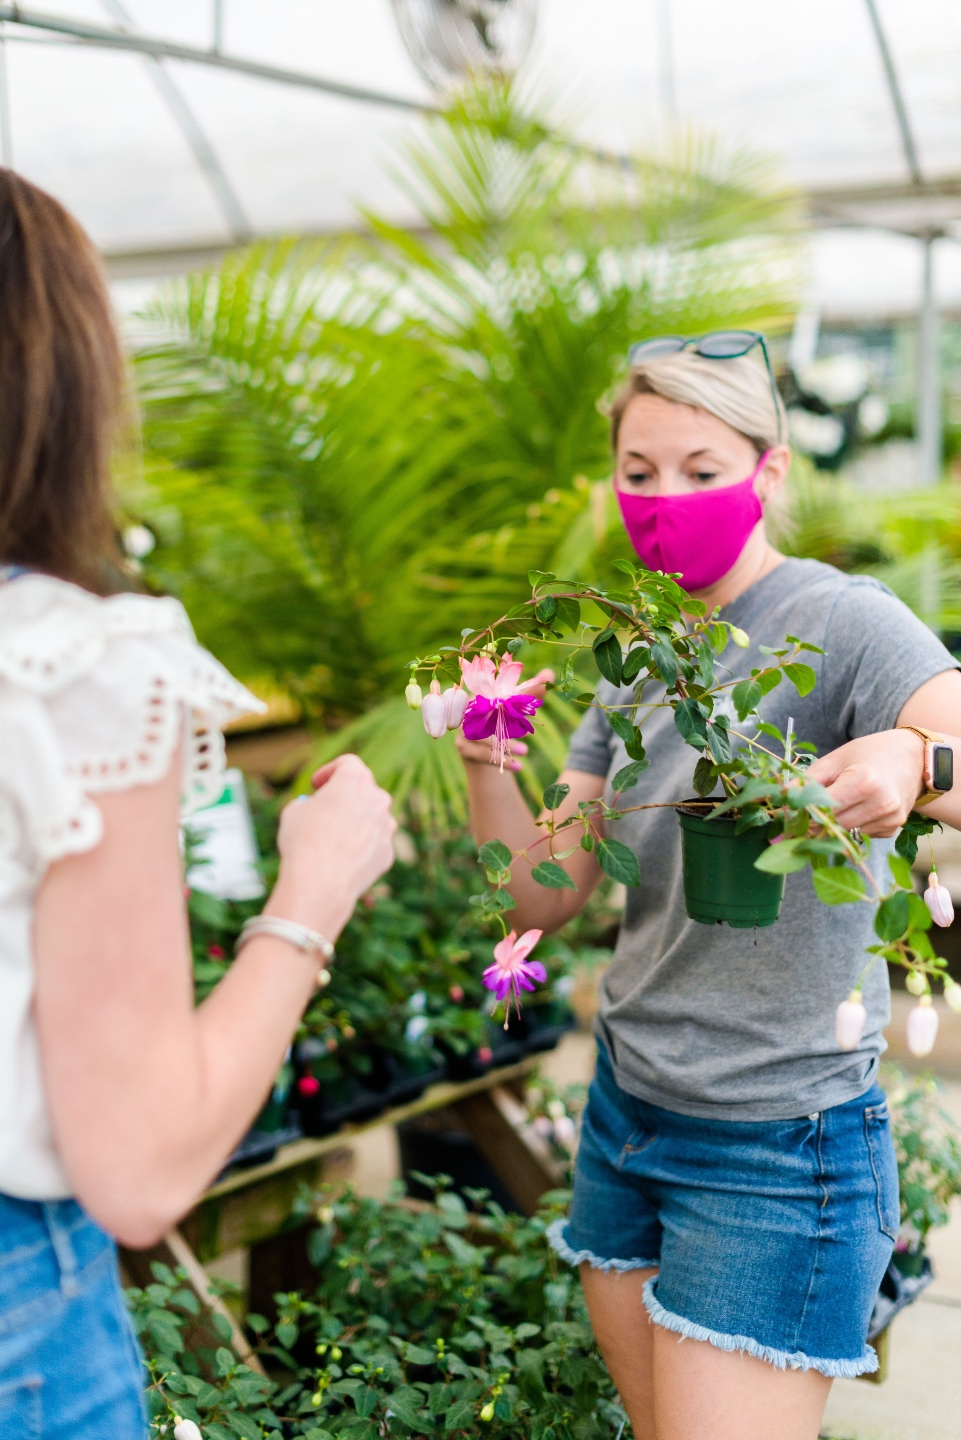 5 Spring Planting Tips with Fairview Garden Center - I'm Fixin' To - @imfixintoblog |Best Plants to Plant in Spring by popular NC lifestyle blog: image of two women looking at a pink floral plant at the Fairview Garden Center.